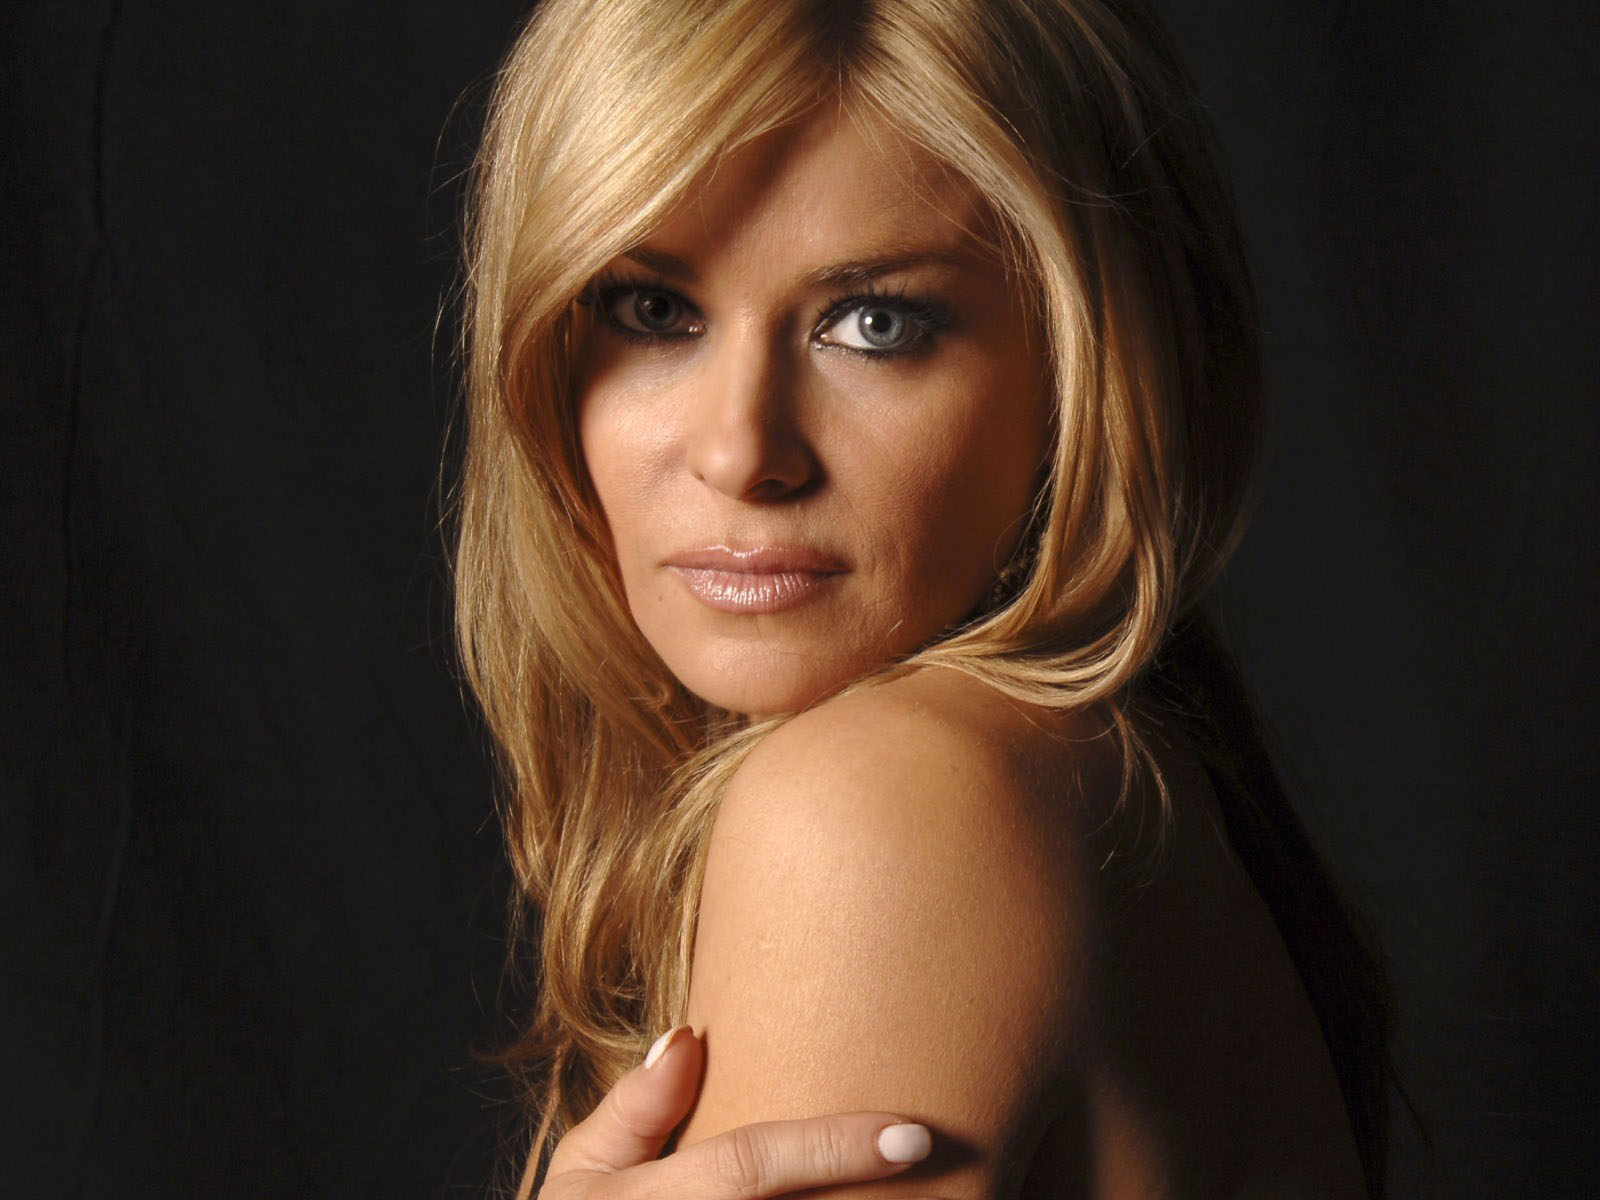 Top hot model Carmen Electra photo gallery 2012 | Top Model Dress ...